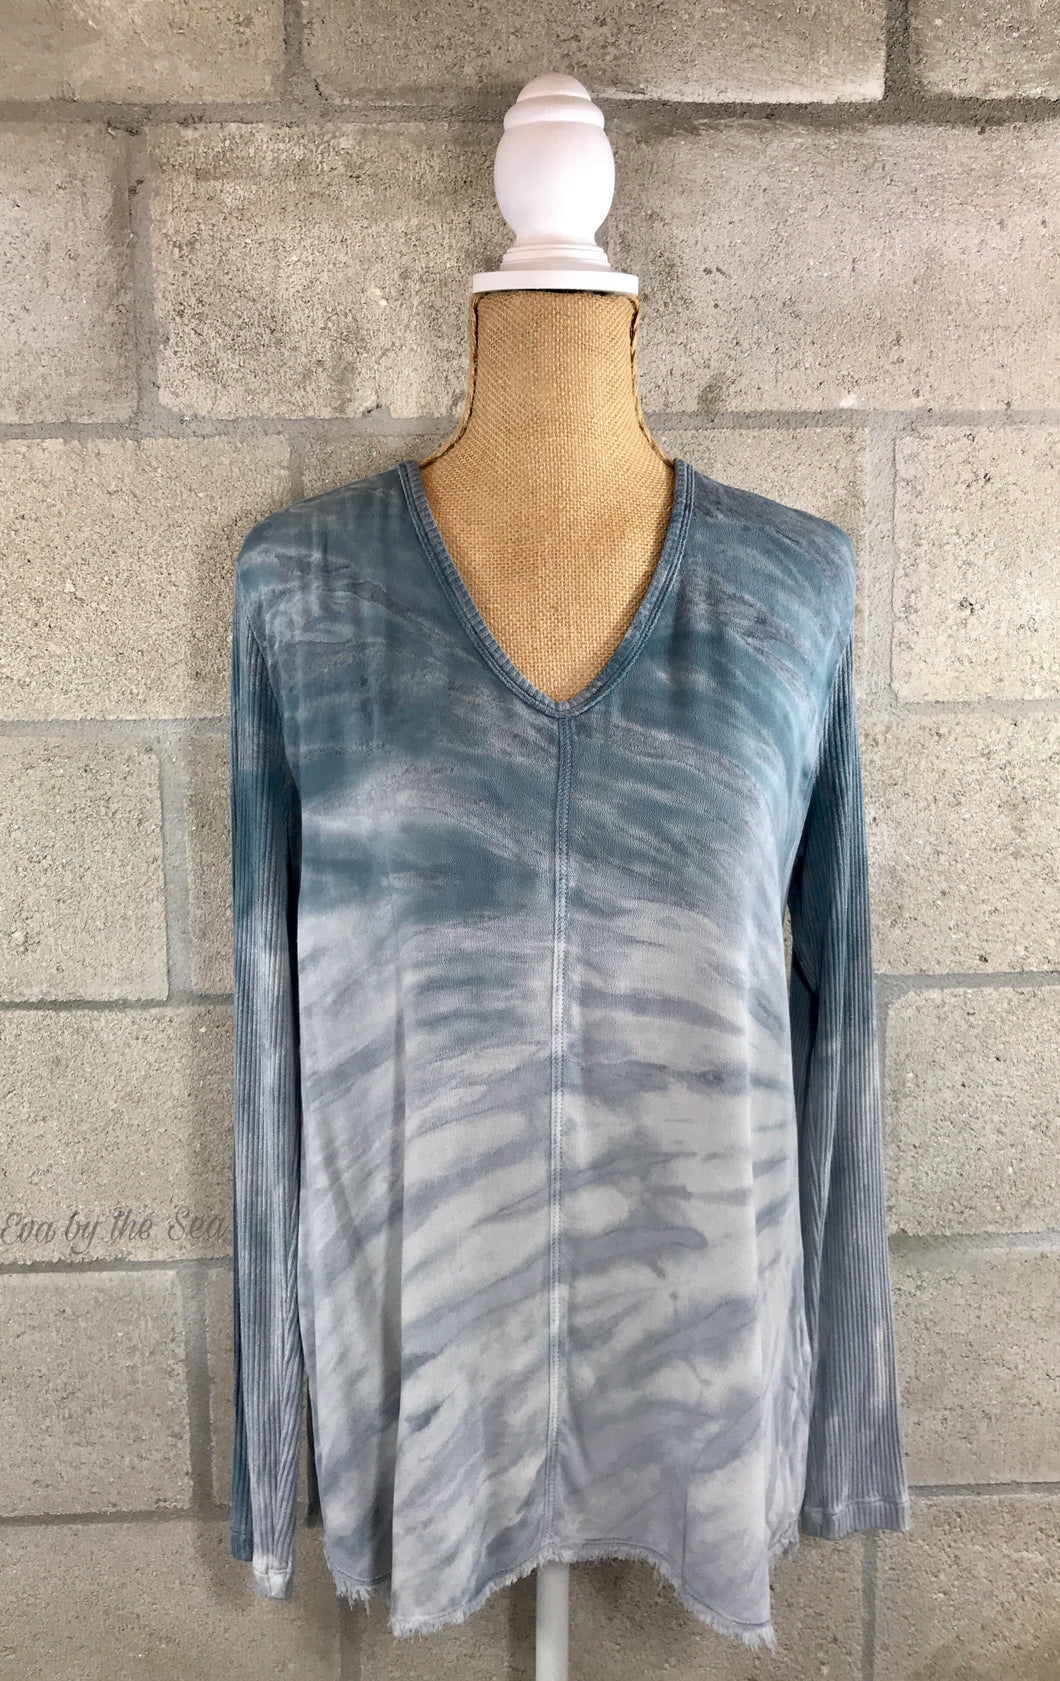 Fringe Bottom Tie Dye Print Long Sleeve Top in Blue